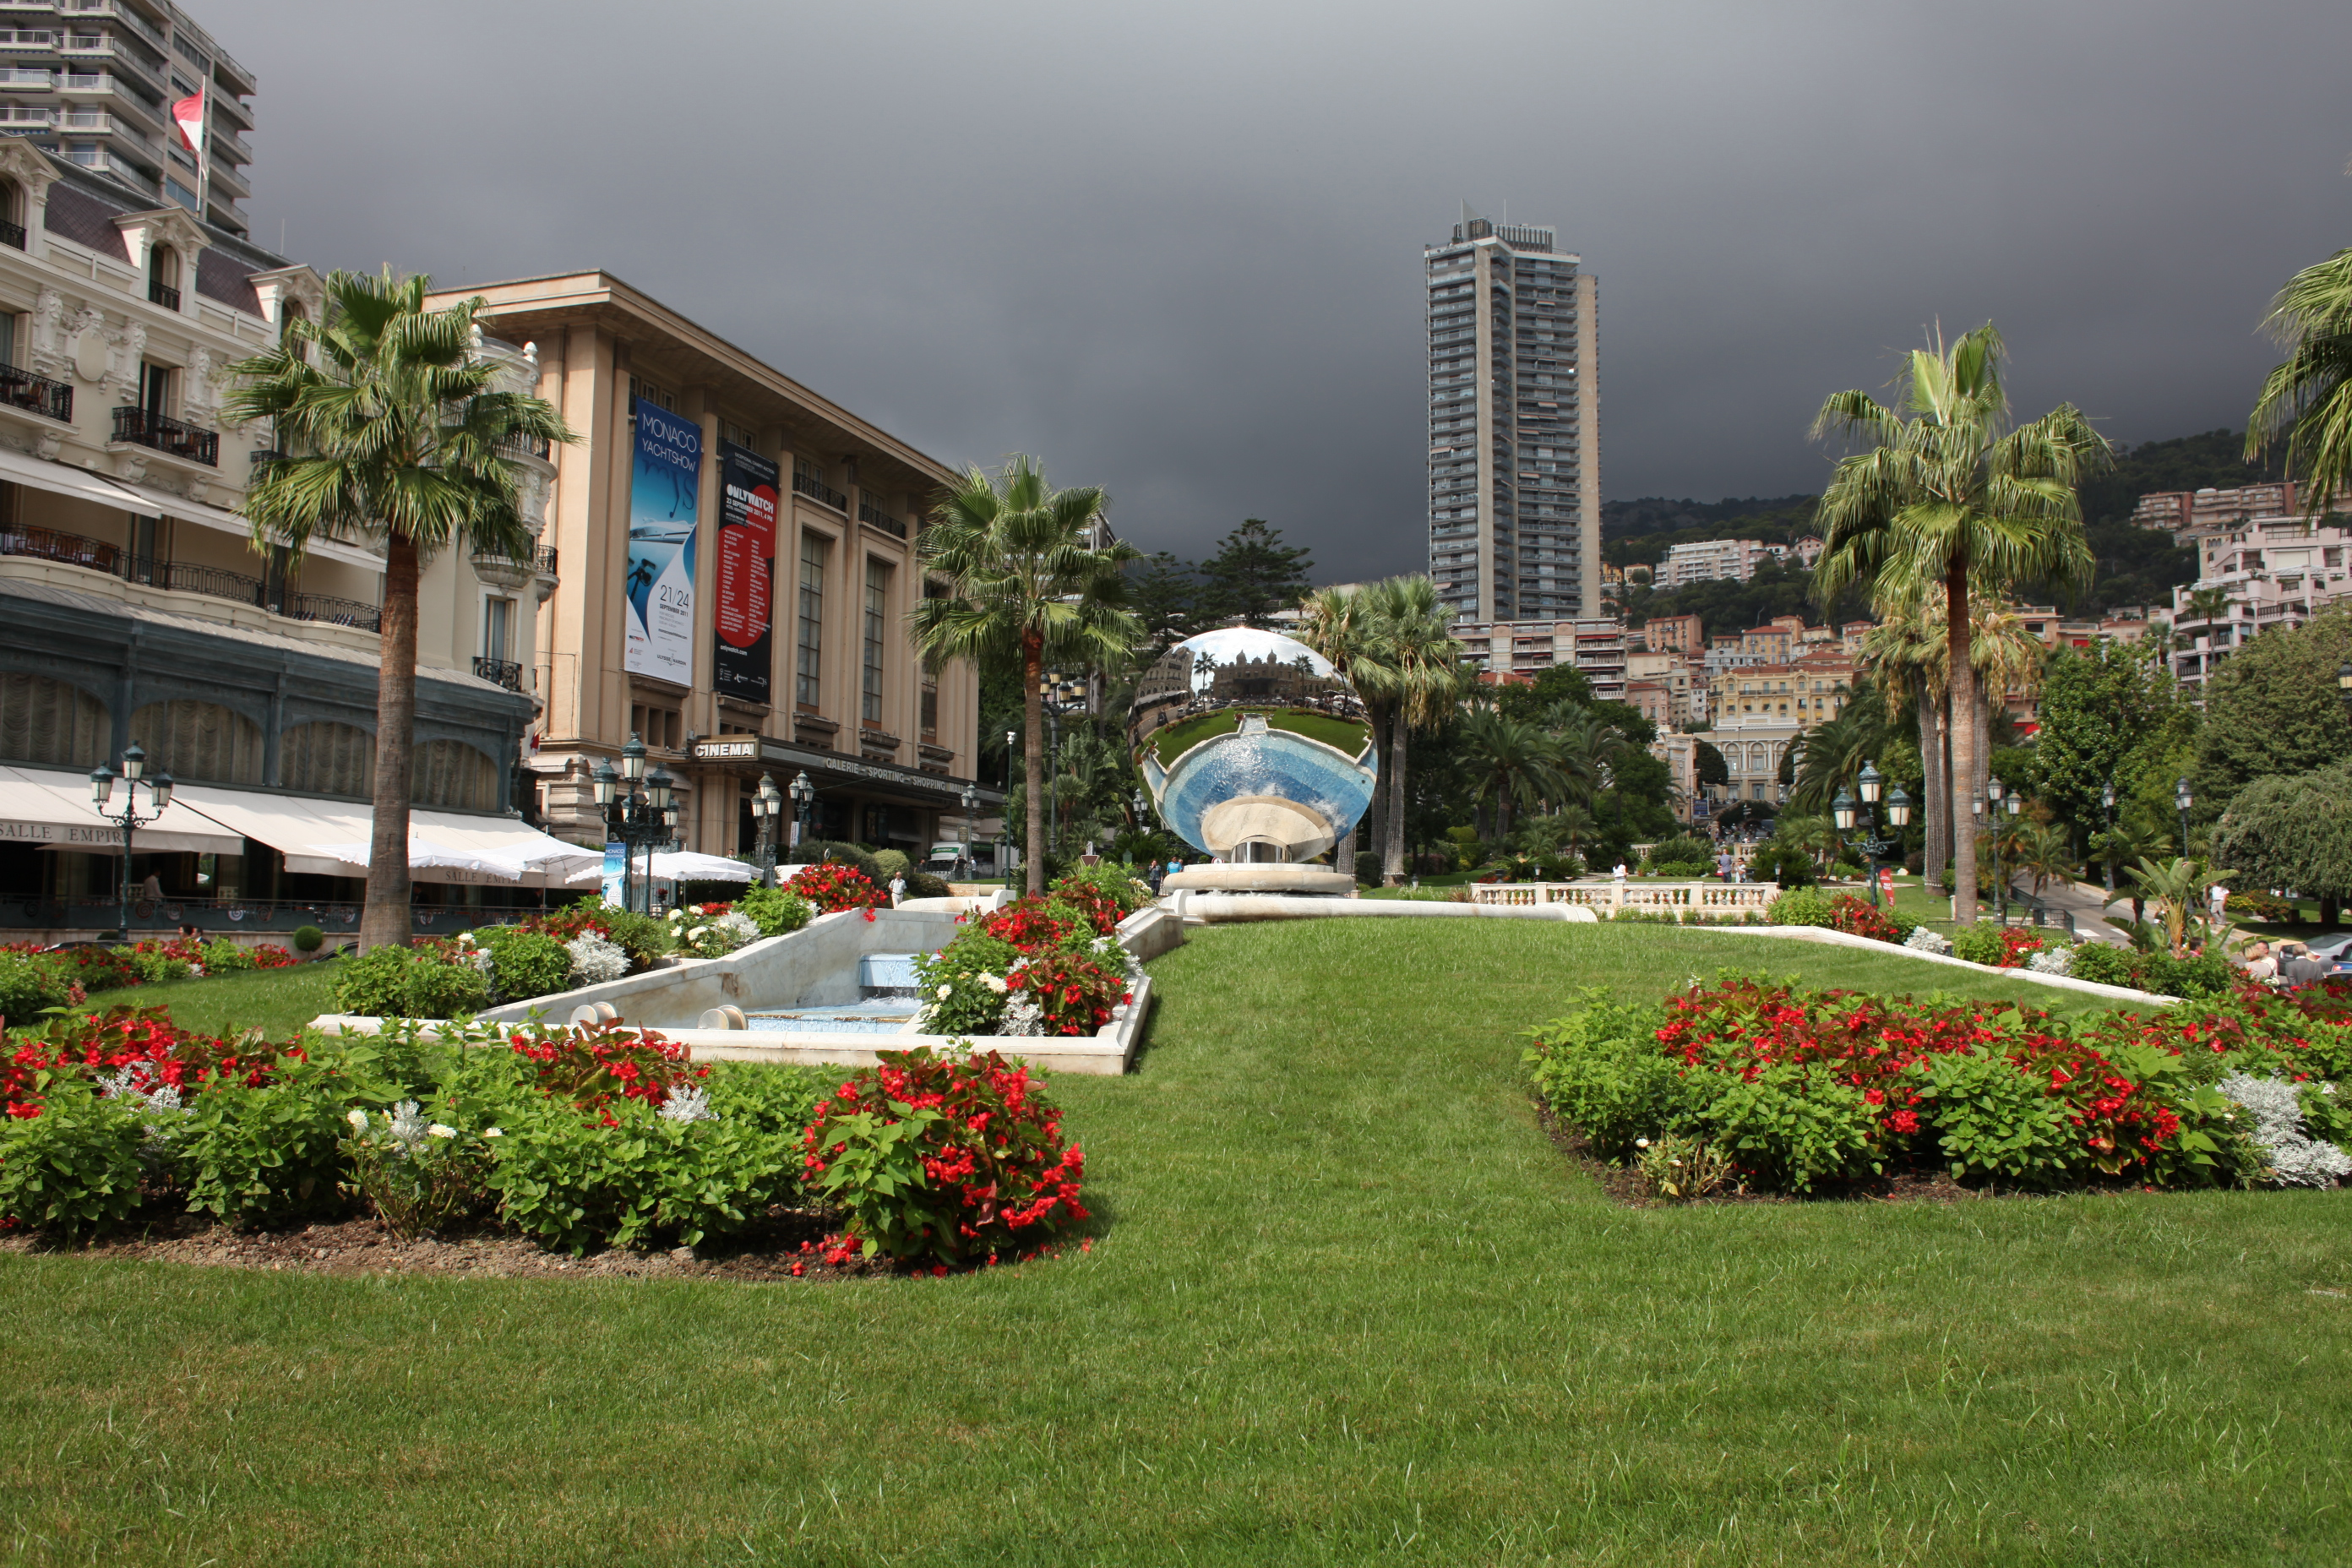 http://www.southafrica.to/transport/cruises/Monaco/images/201109/Casino-Square-LARGE.JPG